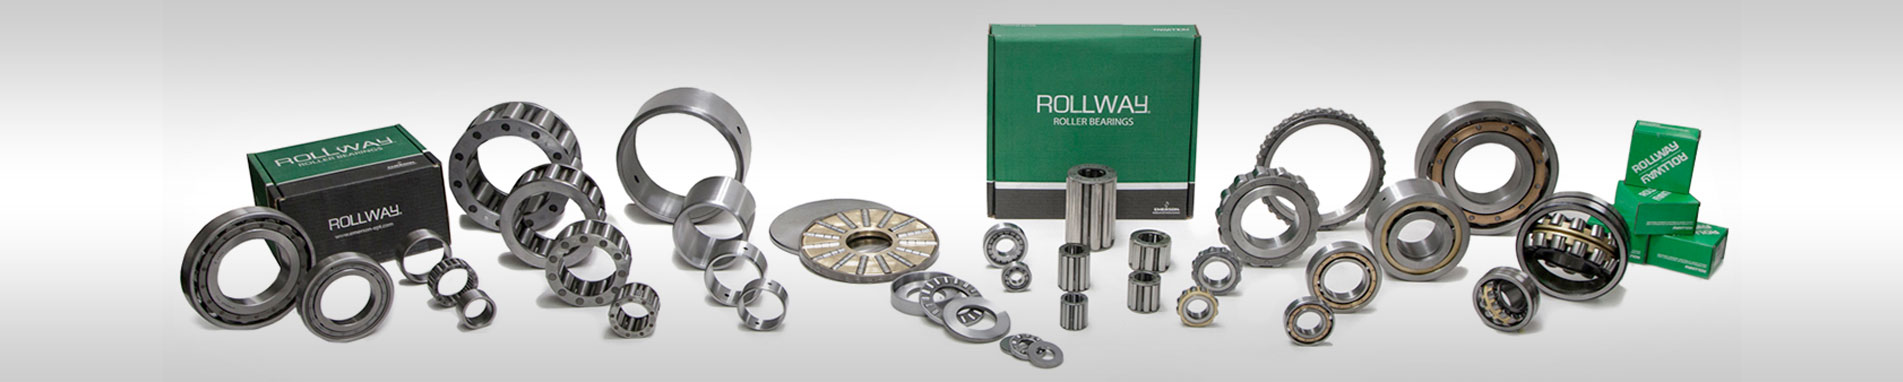 rollway products image